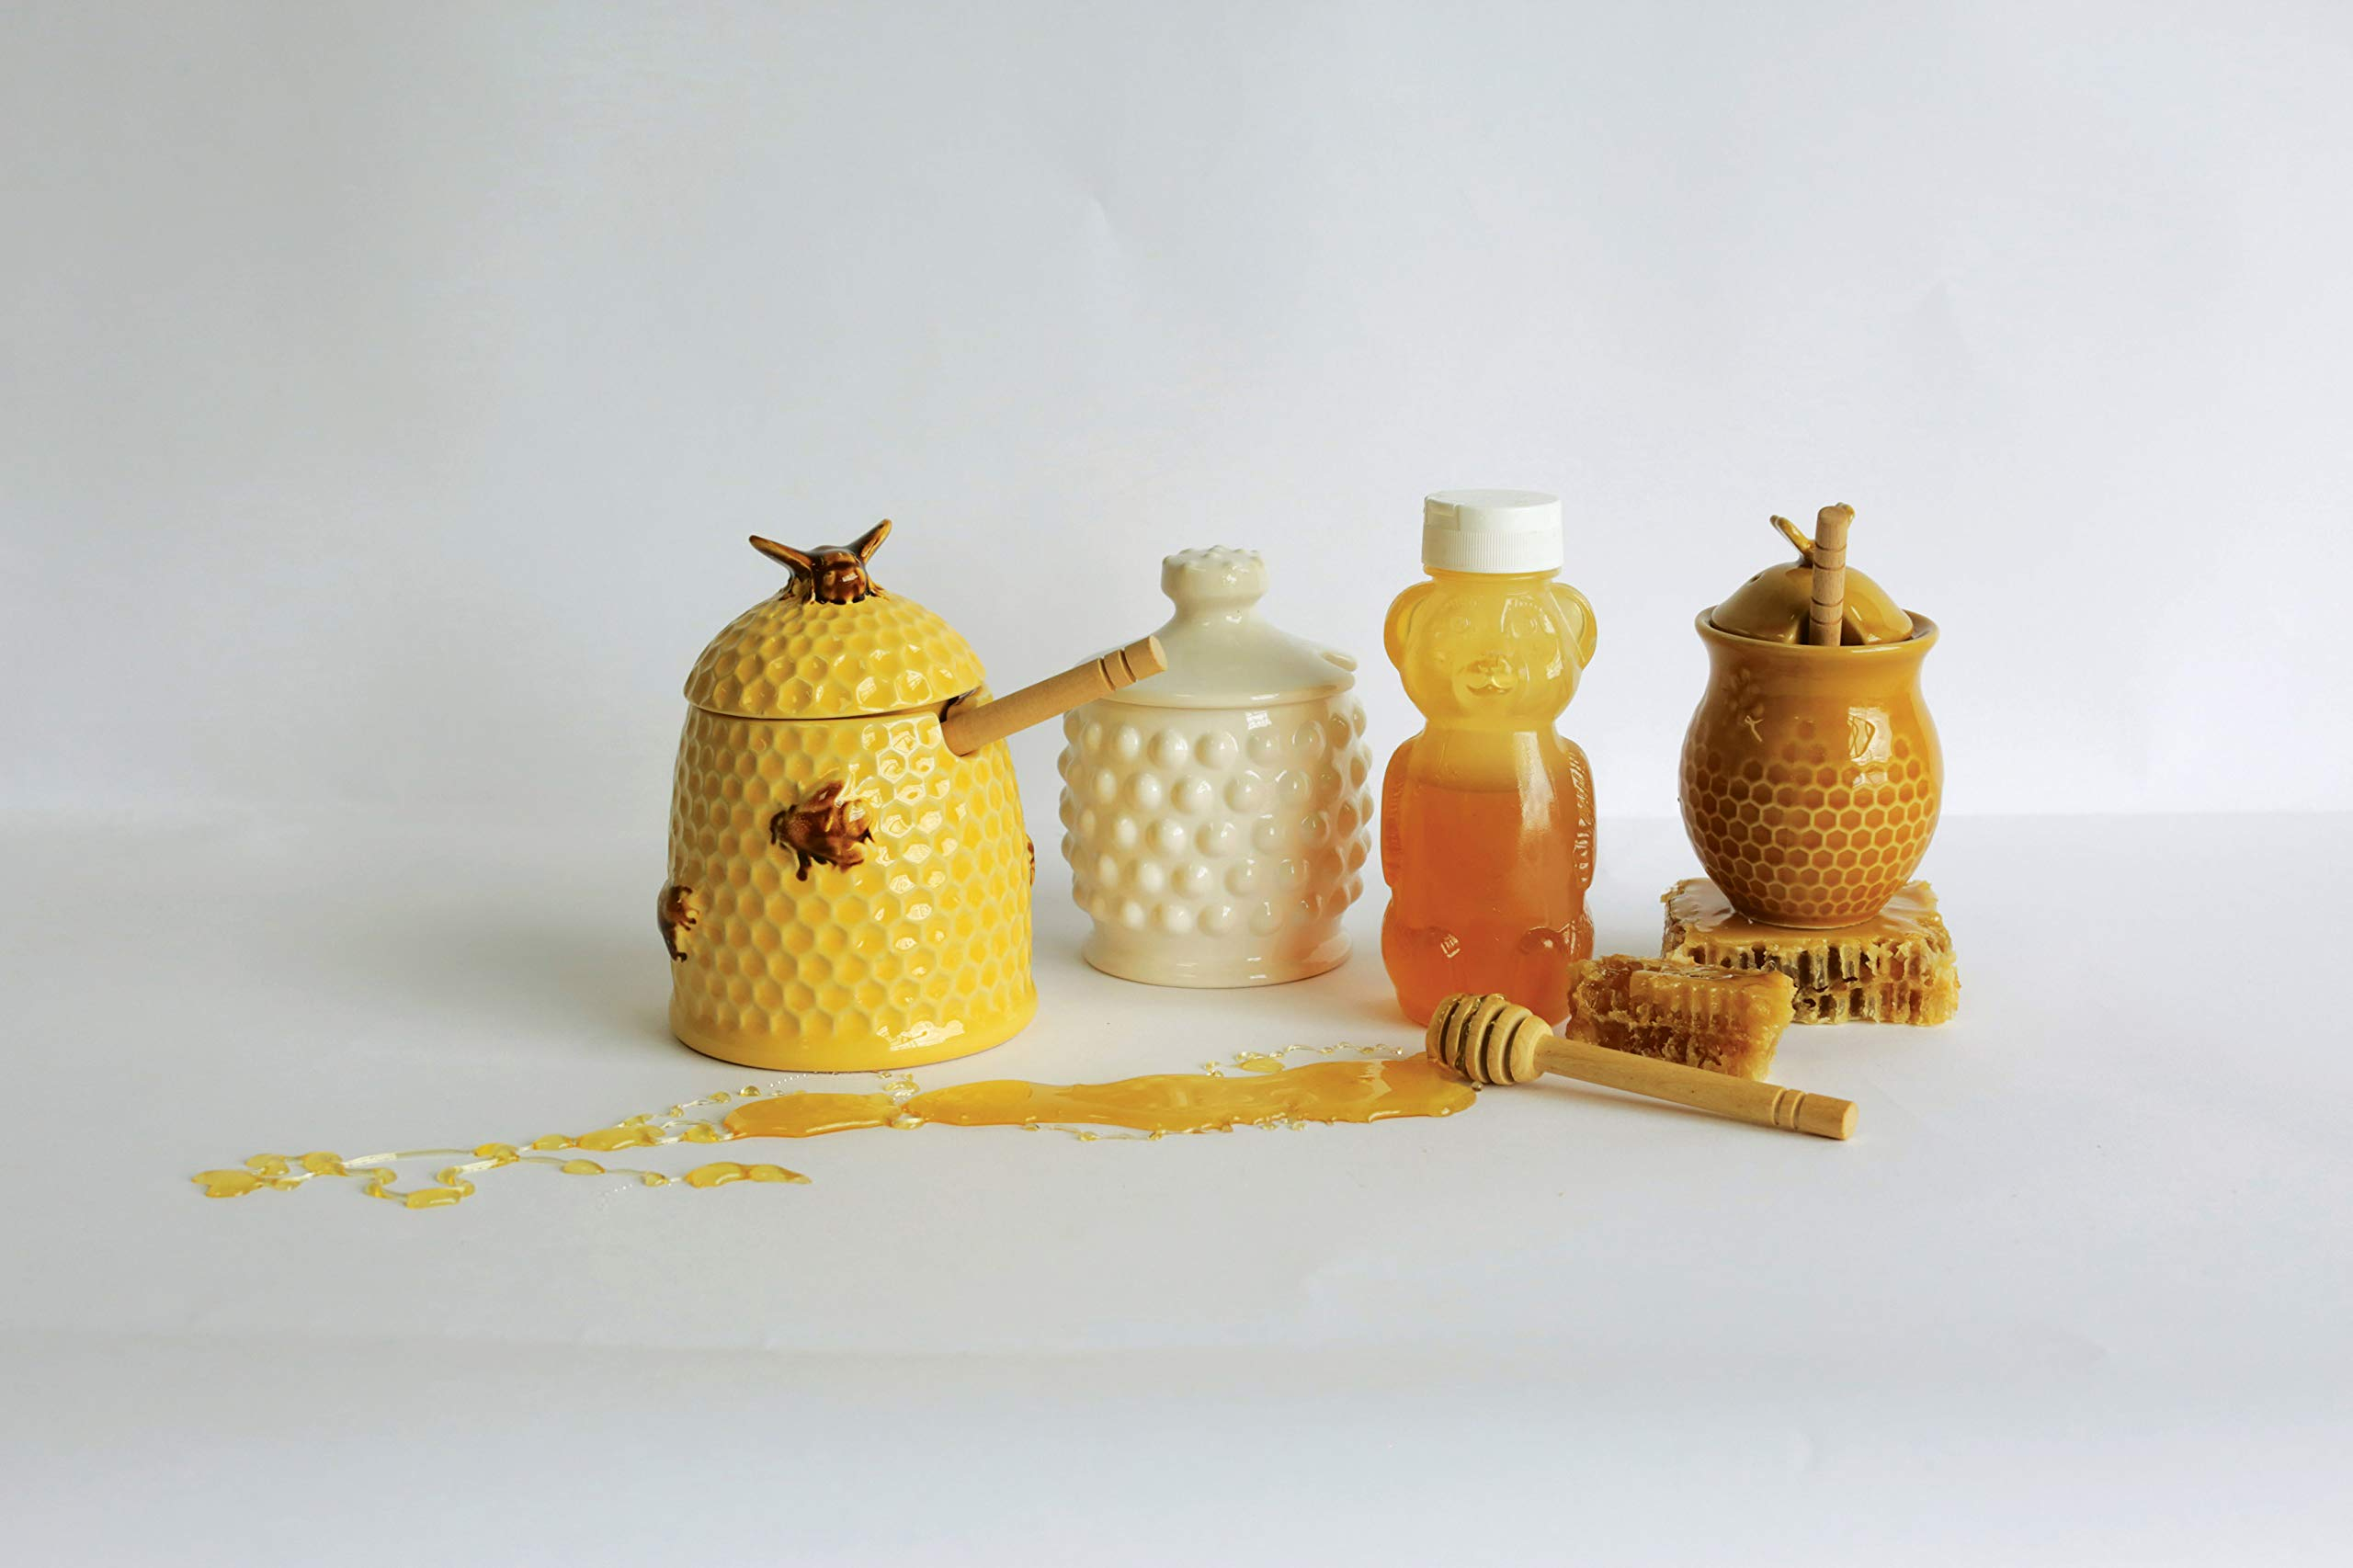 Creative Co-Op DA4847 White Ceramic Hobnail Style Honey Jar with Lid & Wood Dipper by Creative Co-op (Image #3)